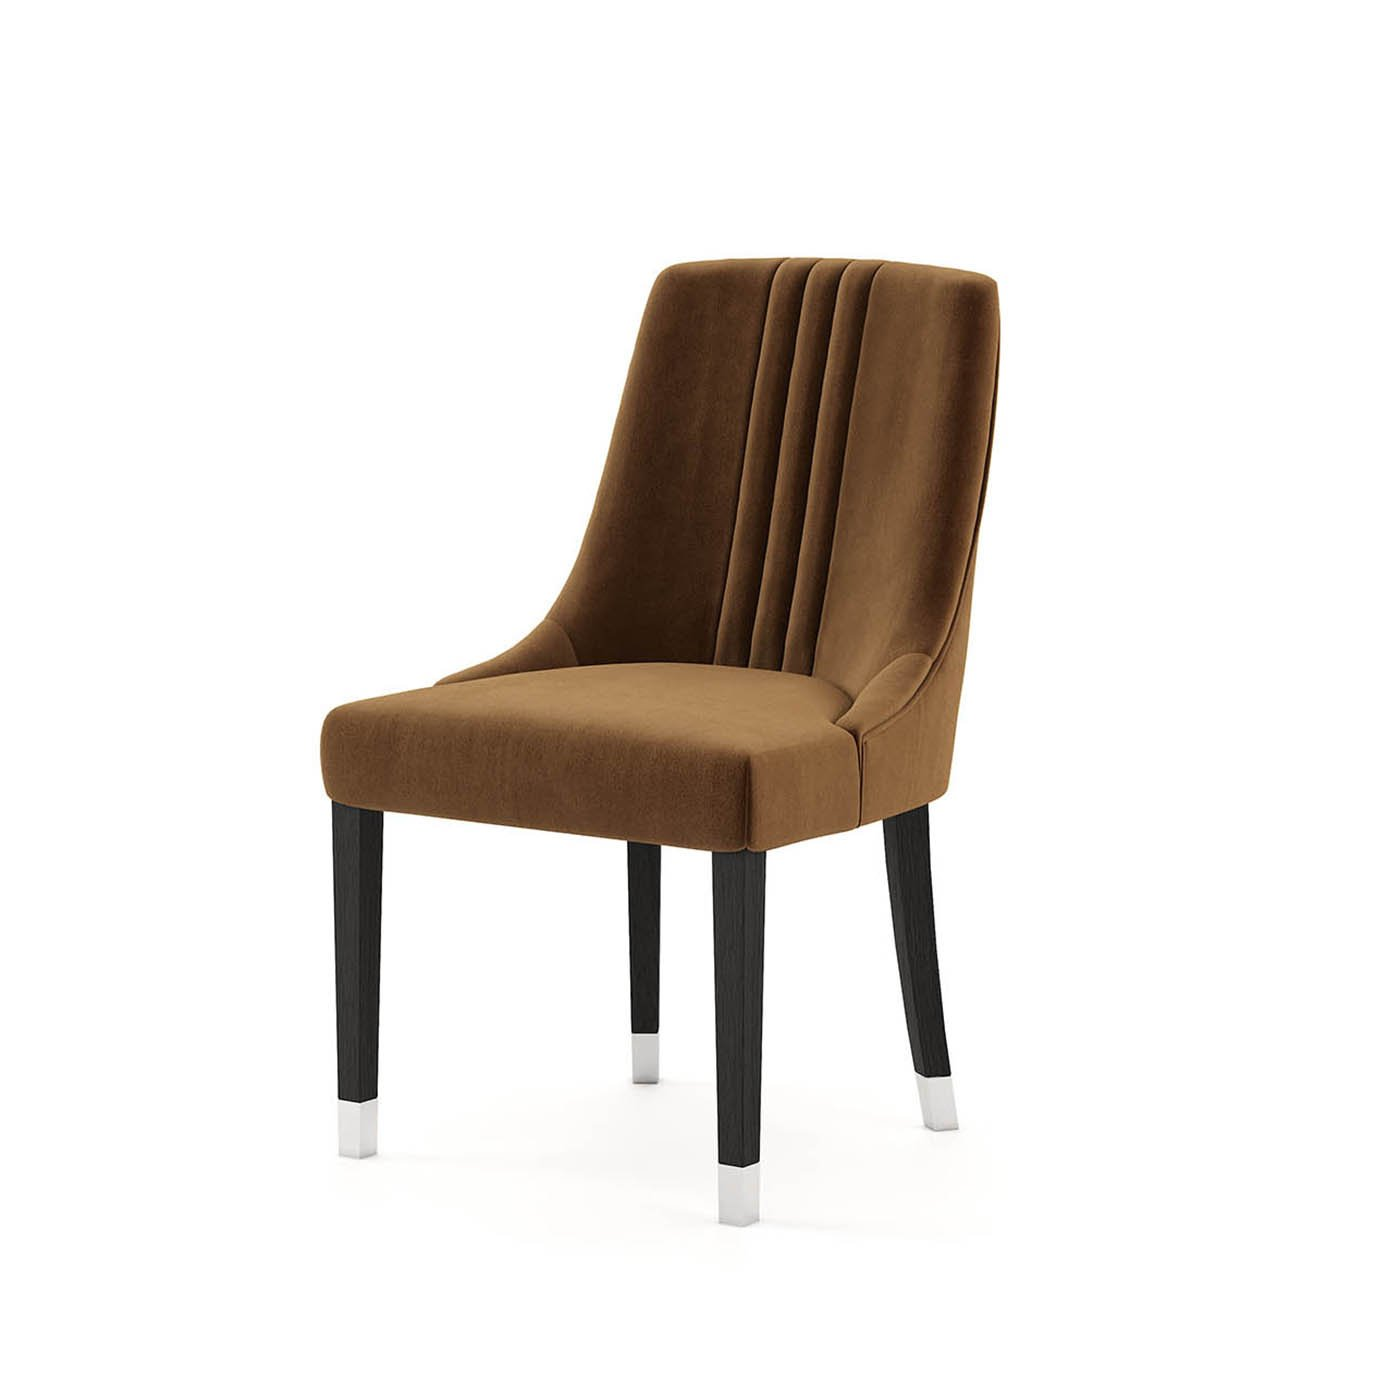 Simone Chair